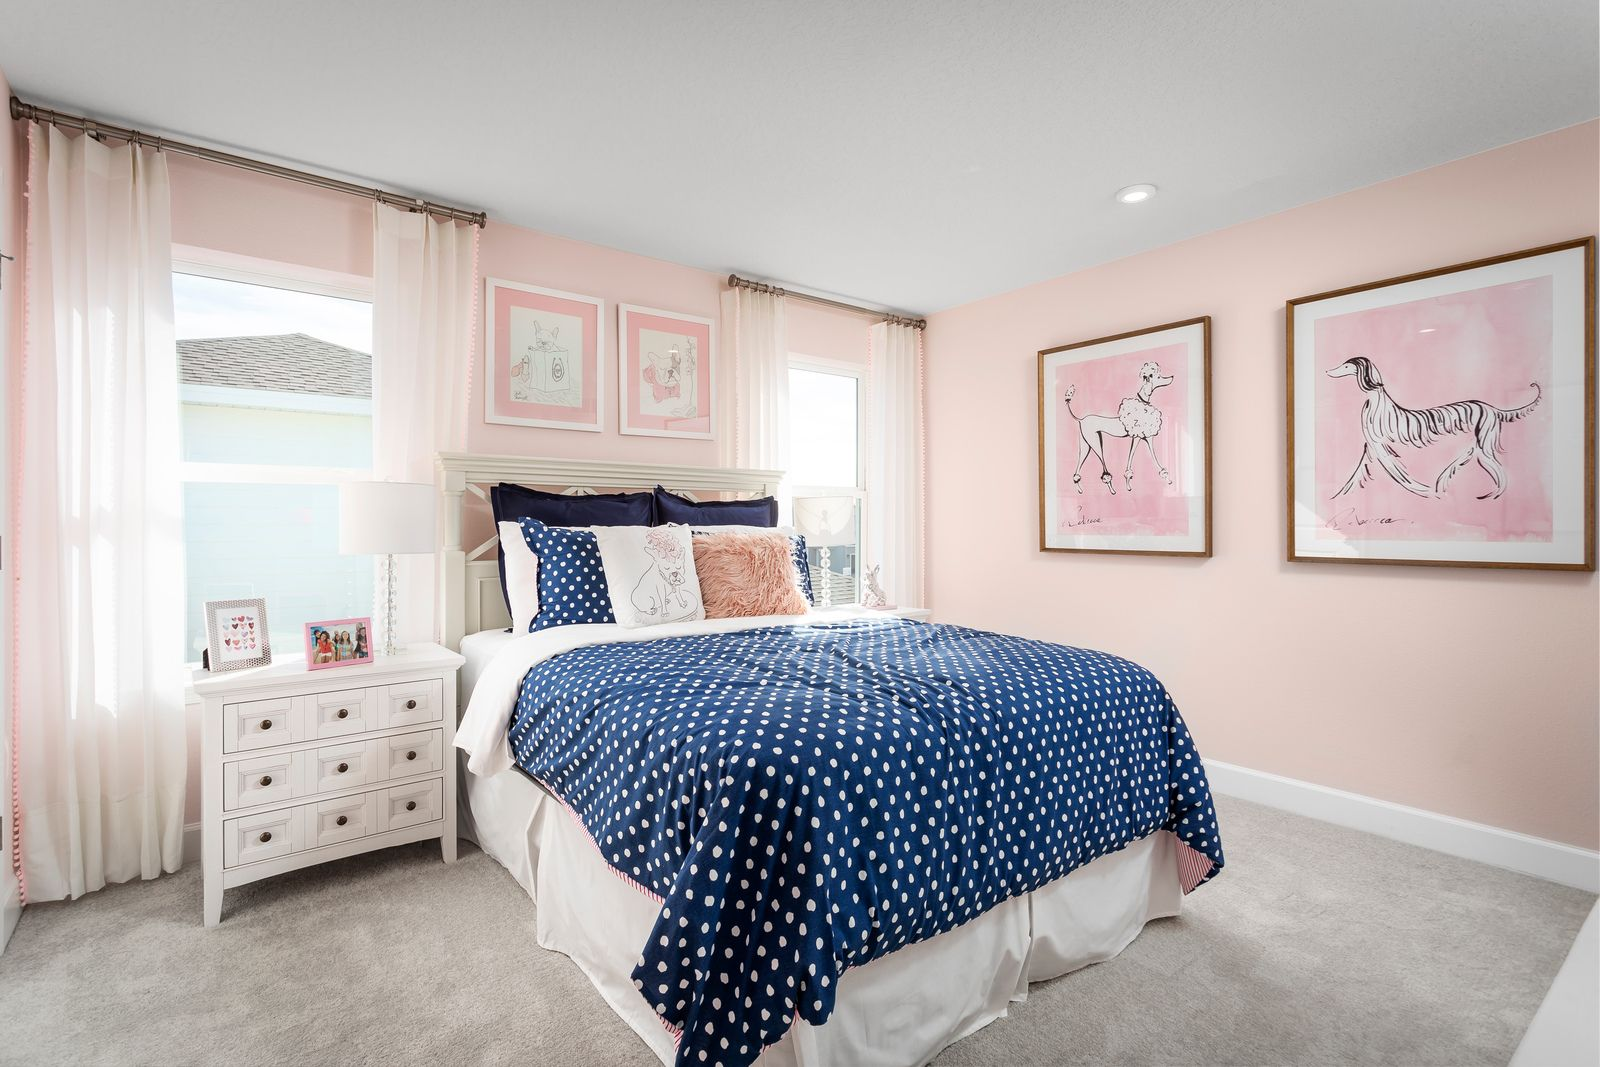 Bedroom featured in the Hadley Bay By Ryan Homes in Orlando, FL